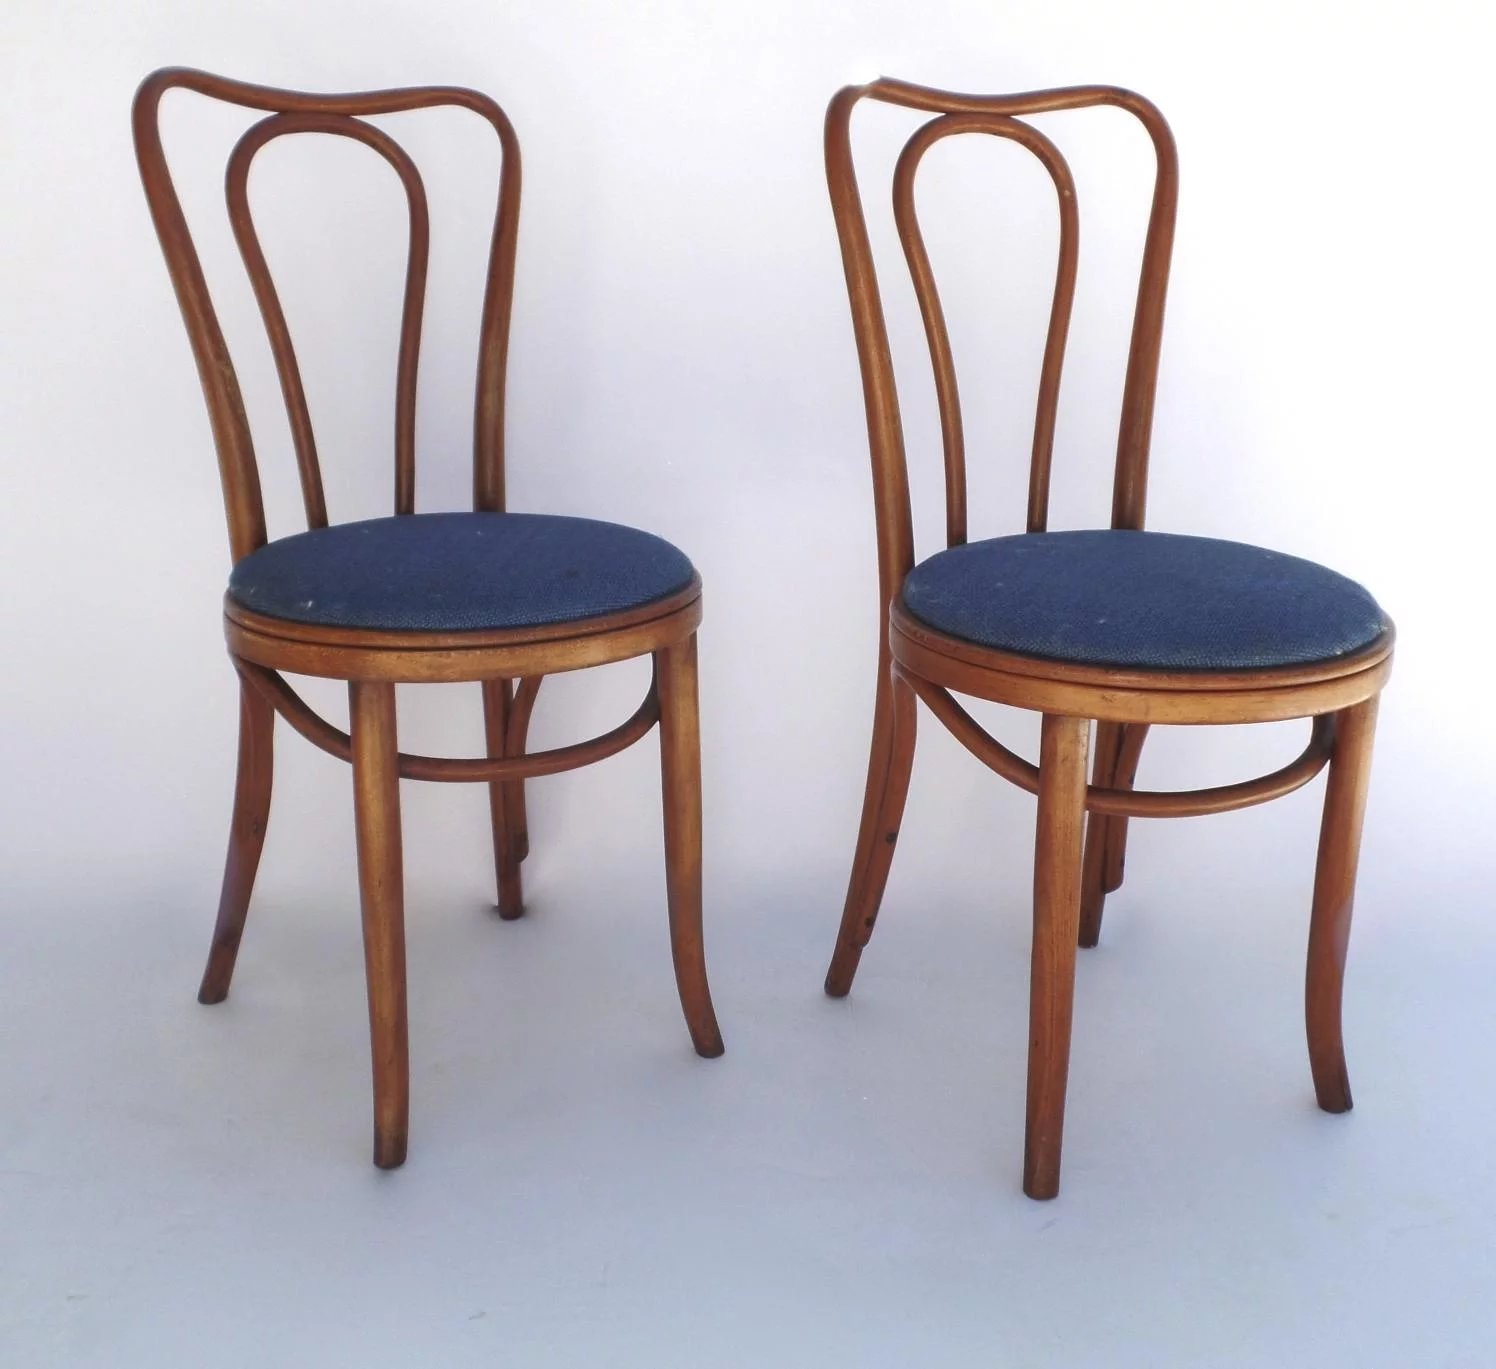 vintage bentwood chairs ikea living room chair pair impressed mark c 1900 s black tulip click to expand